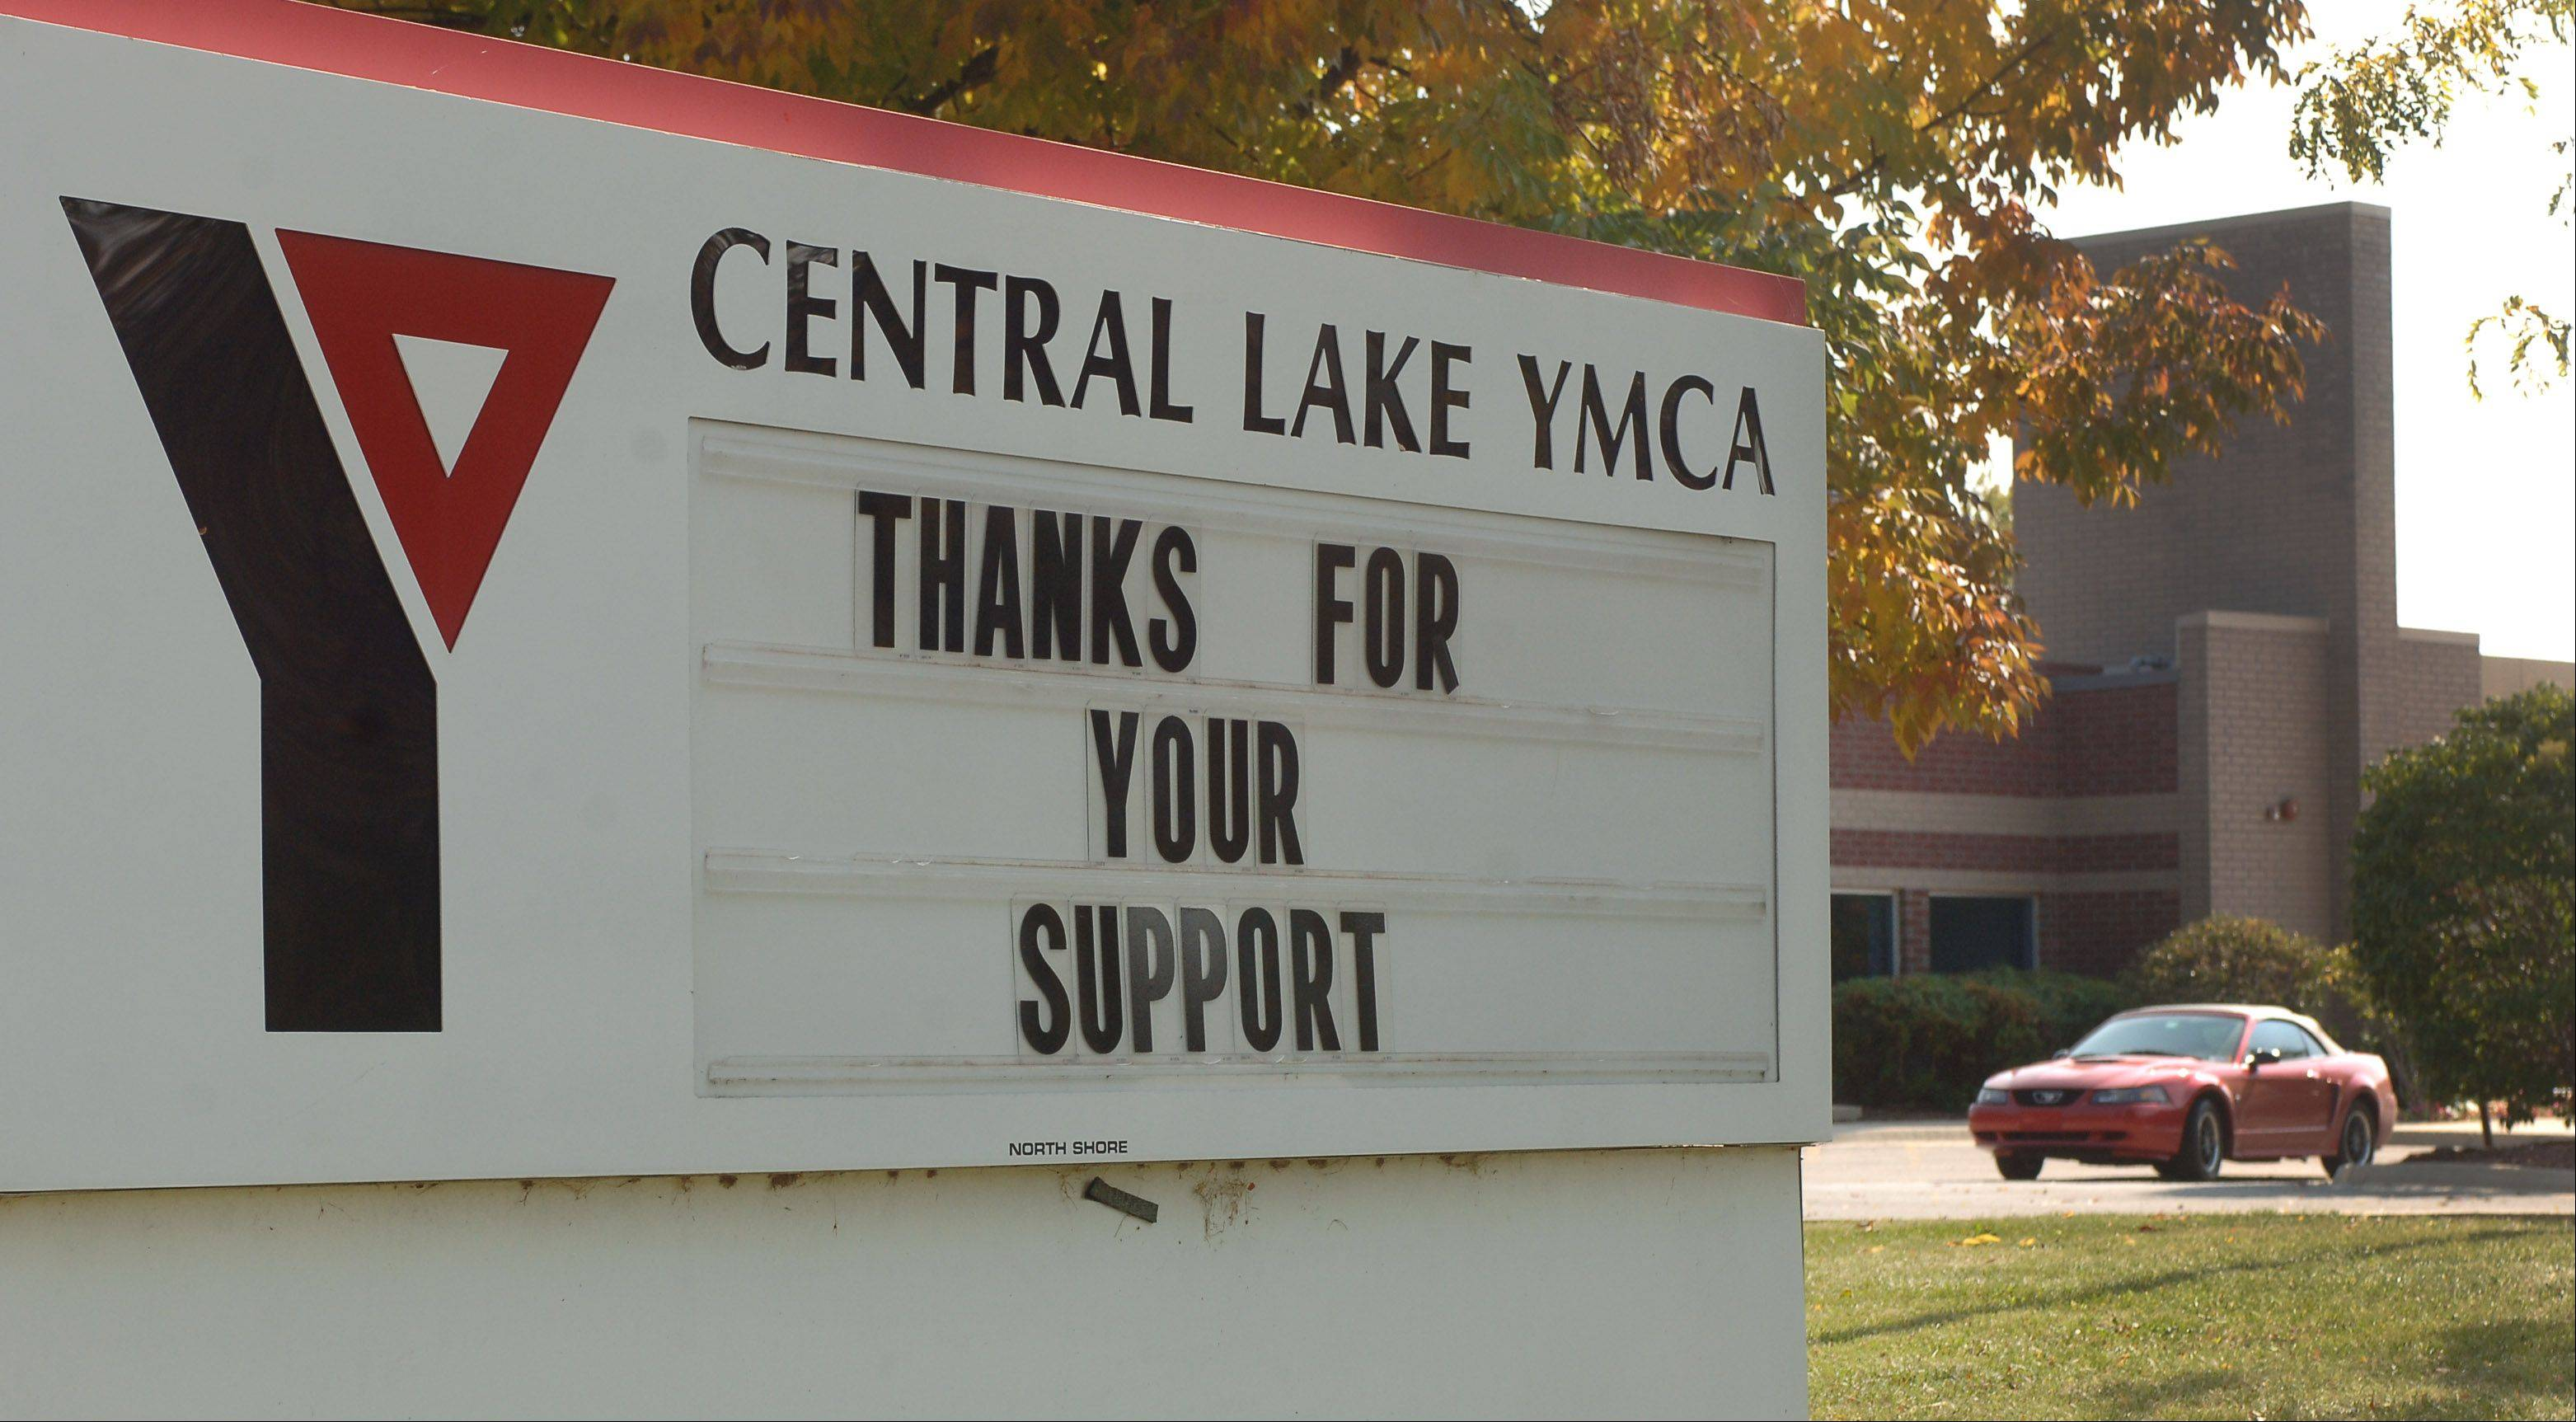 A thank you message was posted after officials announced the closing of the Central LakeYMCA in Vernon Hills.